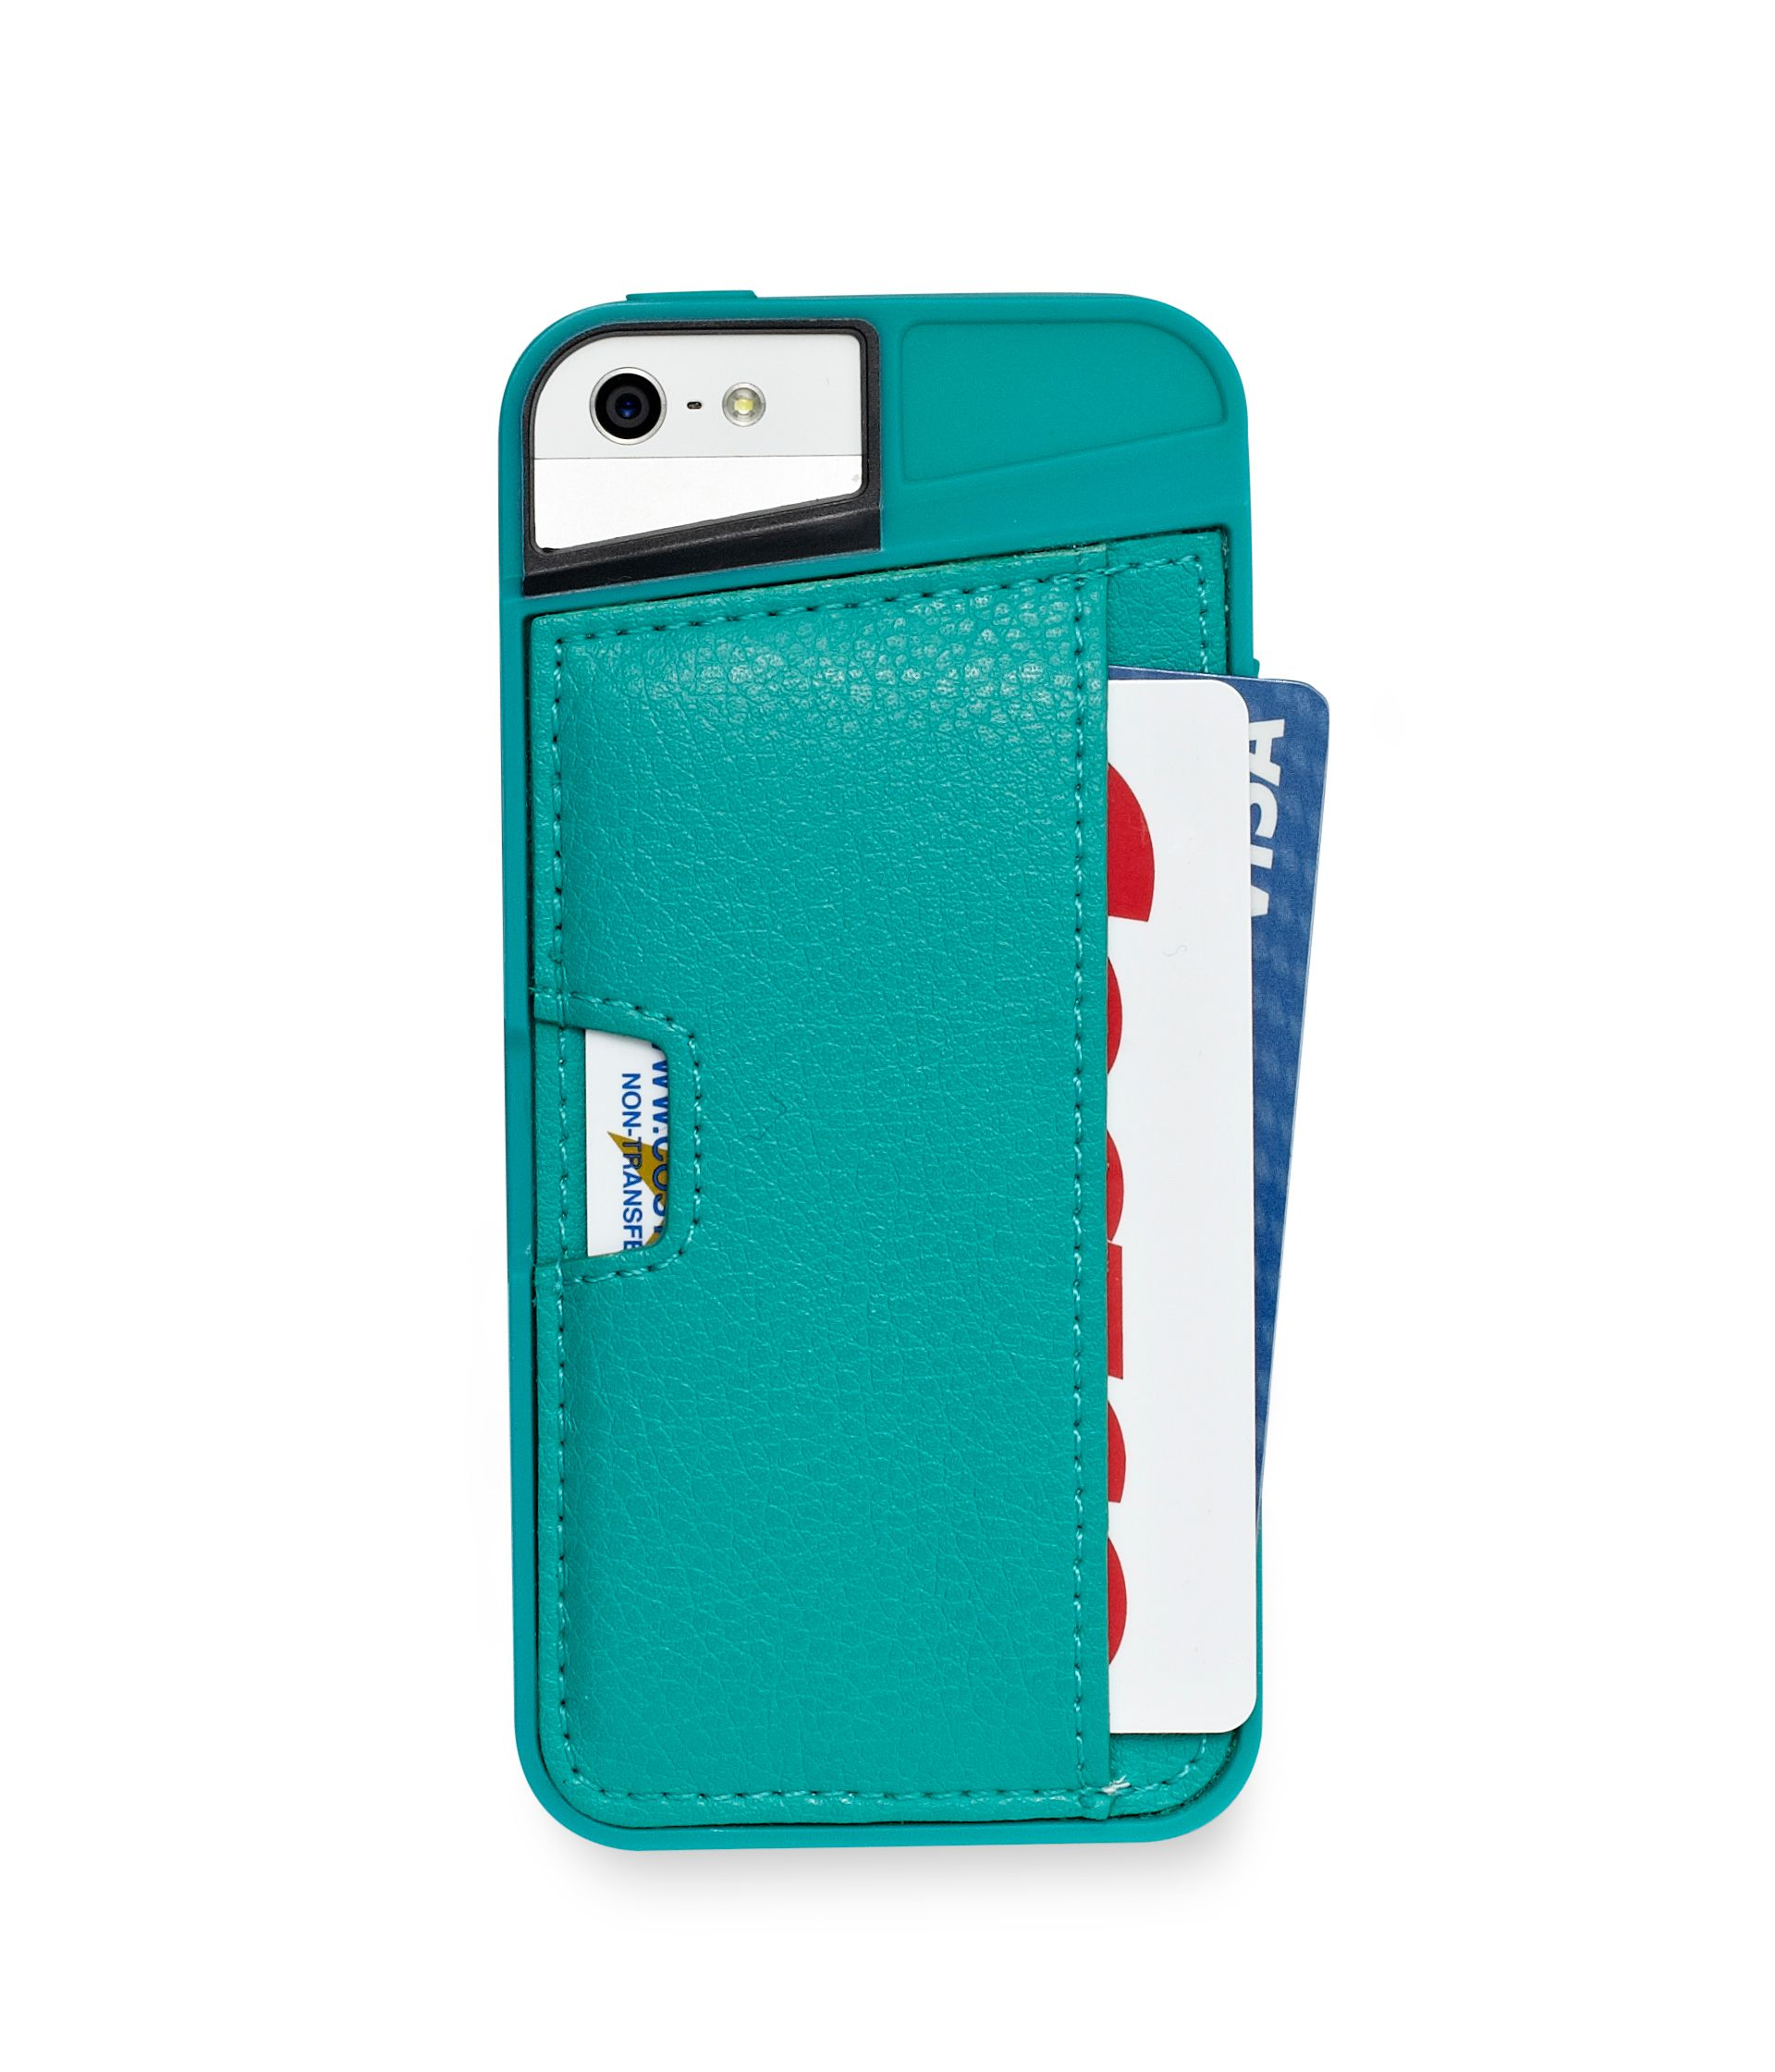 timeless design 48911 860a6 Smartphone Wallet Case - Reviews of Best Smartphone Cases